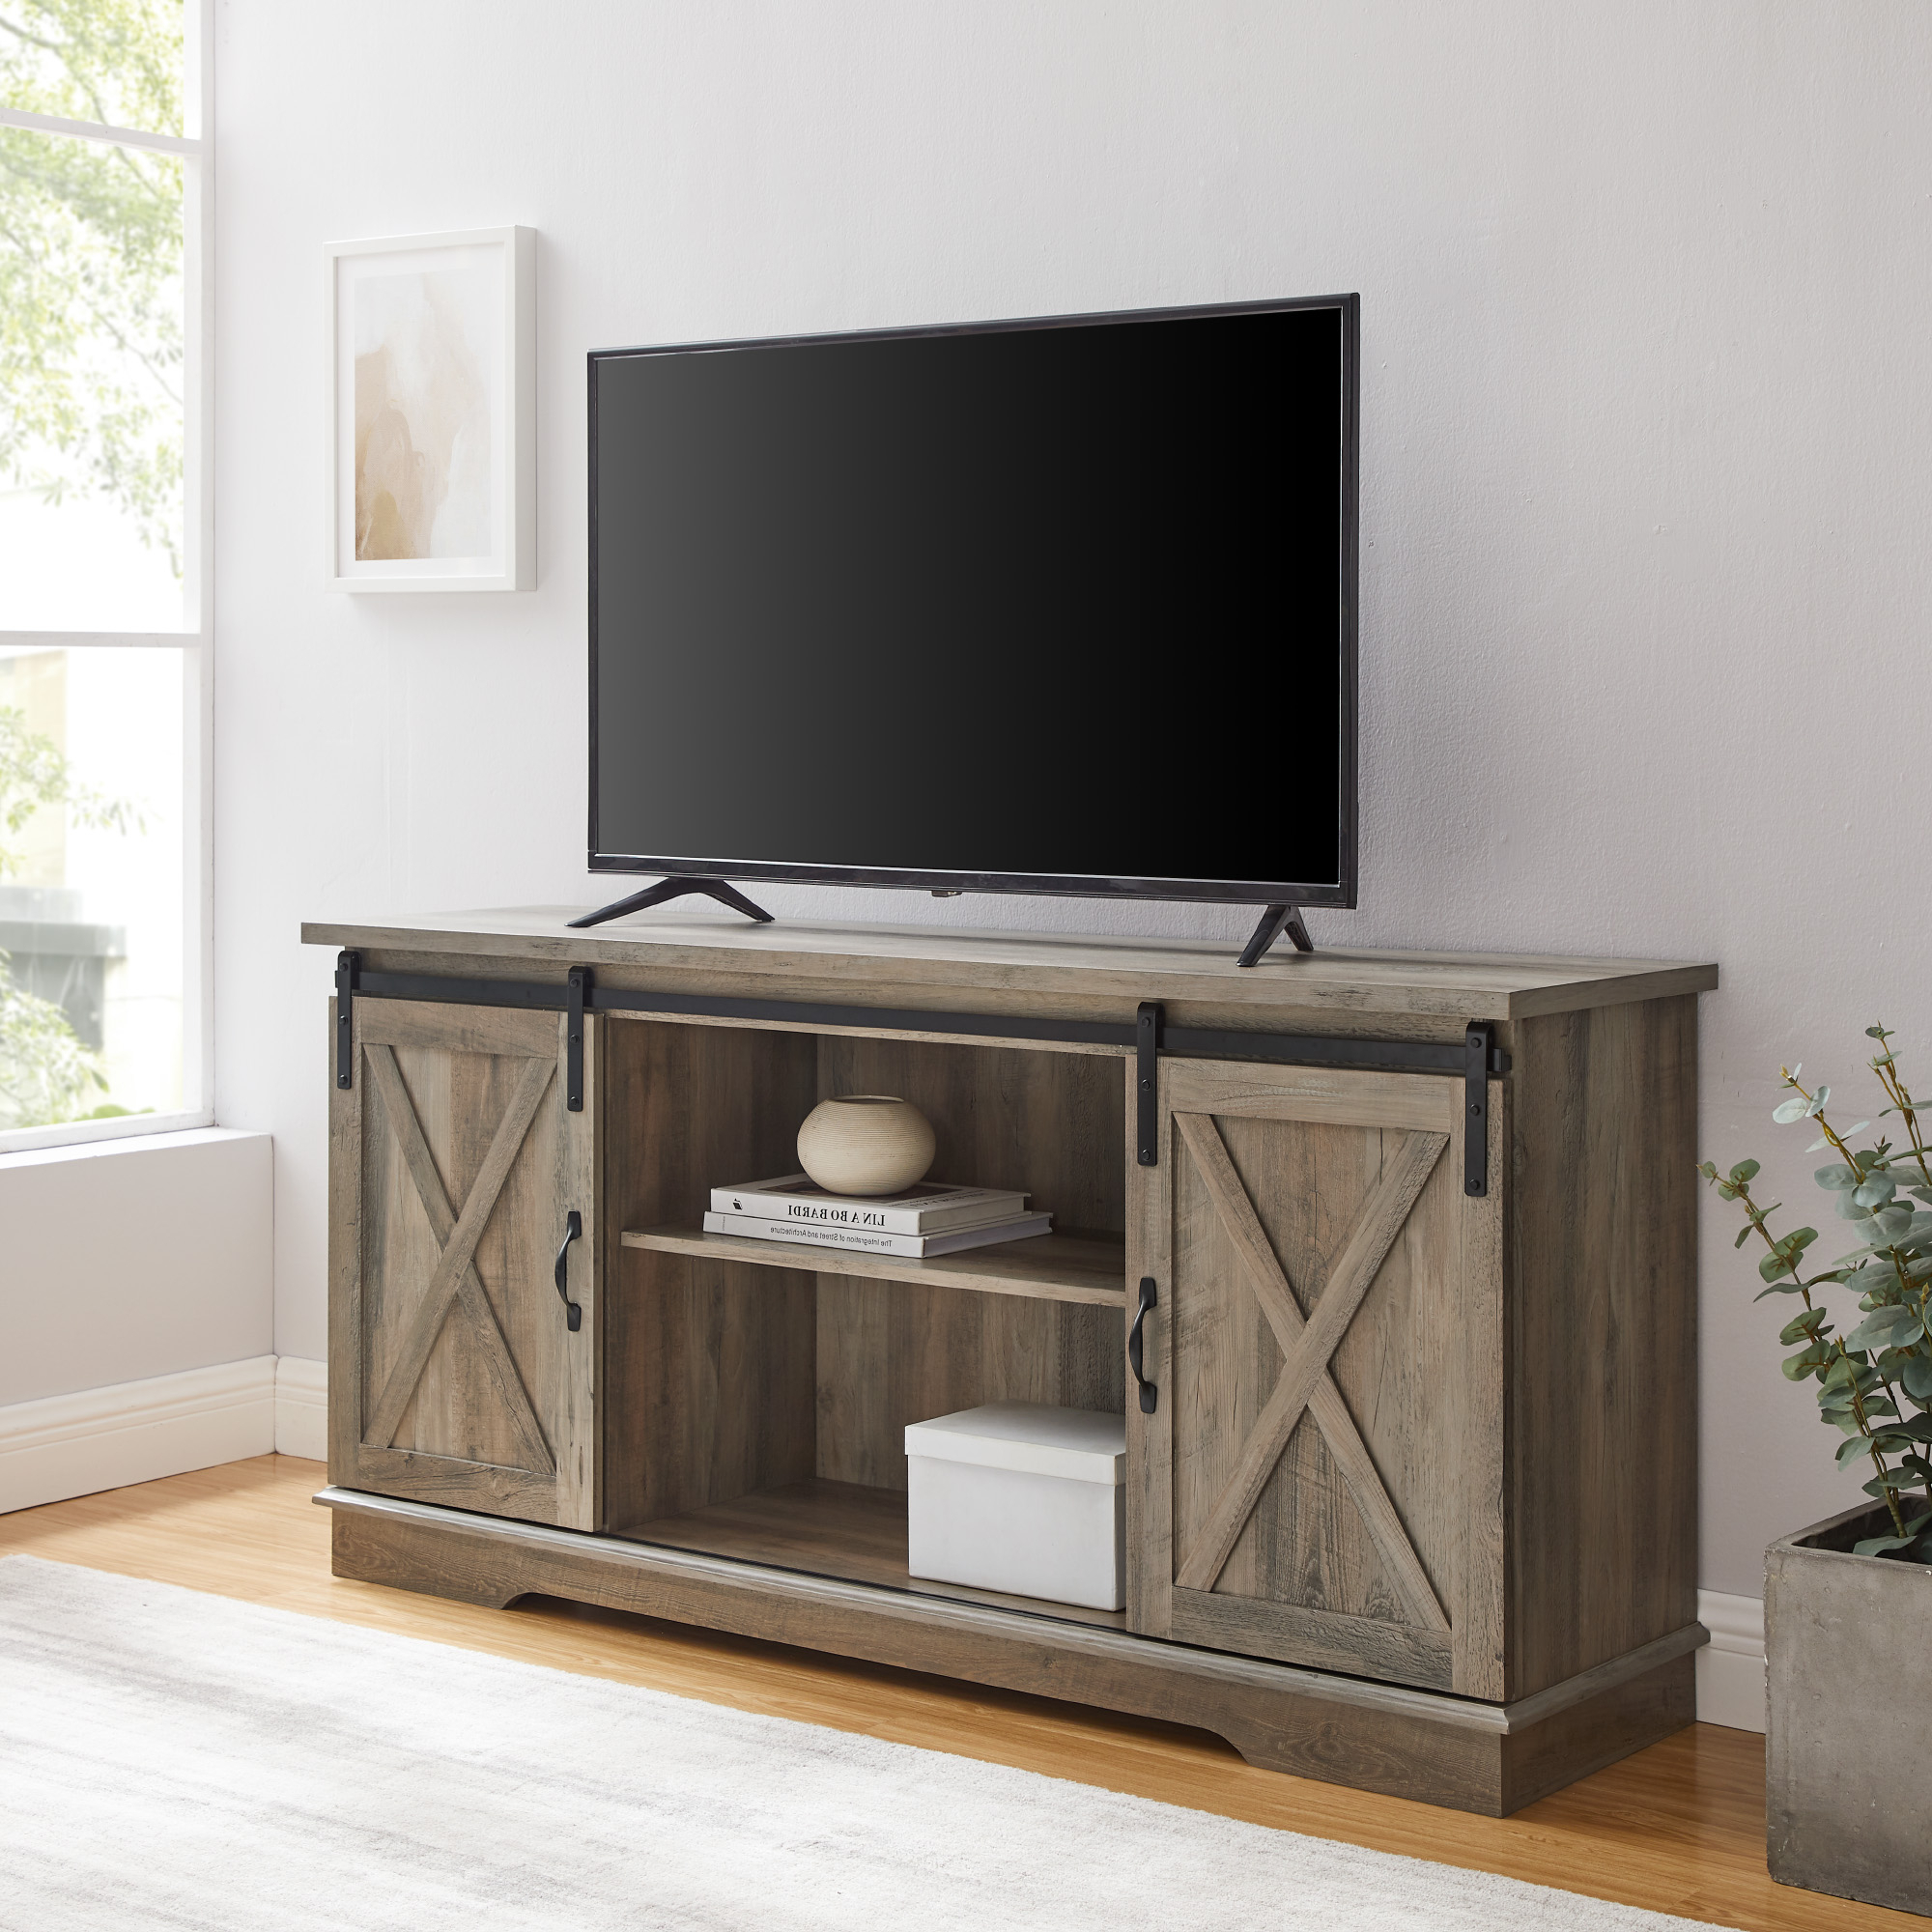 """Woven Paths Farmhouse Sliding Barn Door Tv Stand For Tvs With Stamford Tv Stands For Tvs Up To 65"""" (View 1 of 20)"""